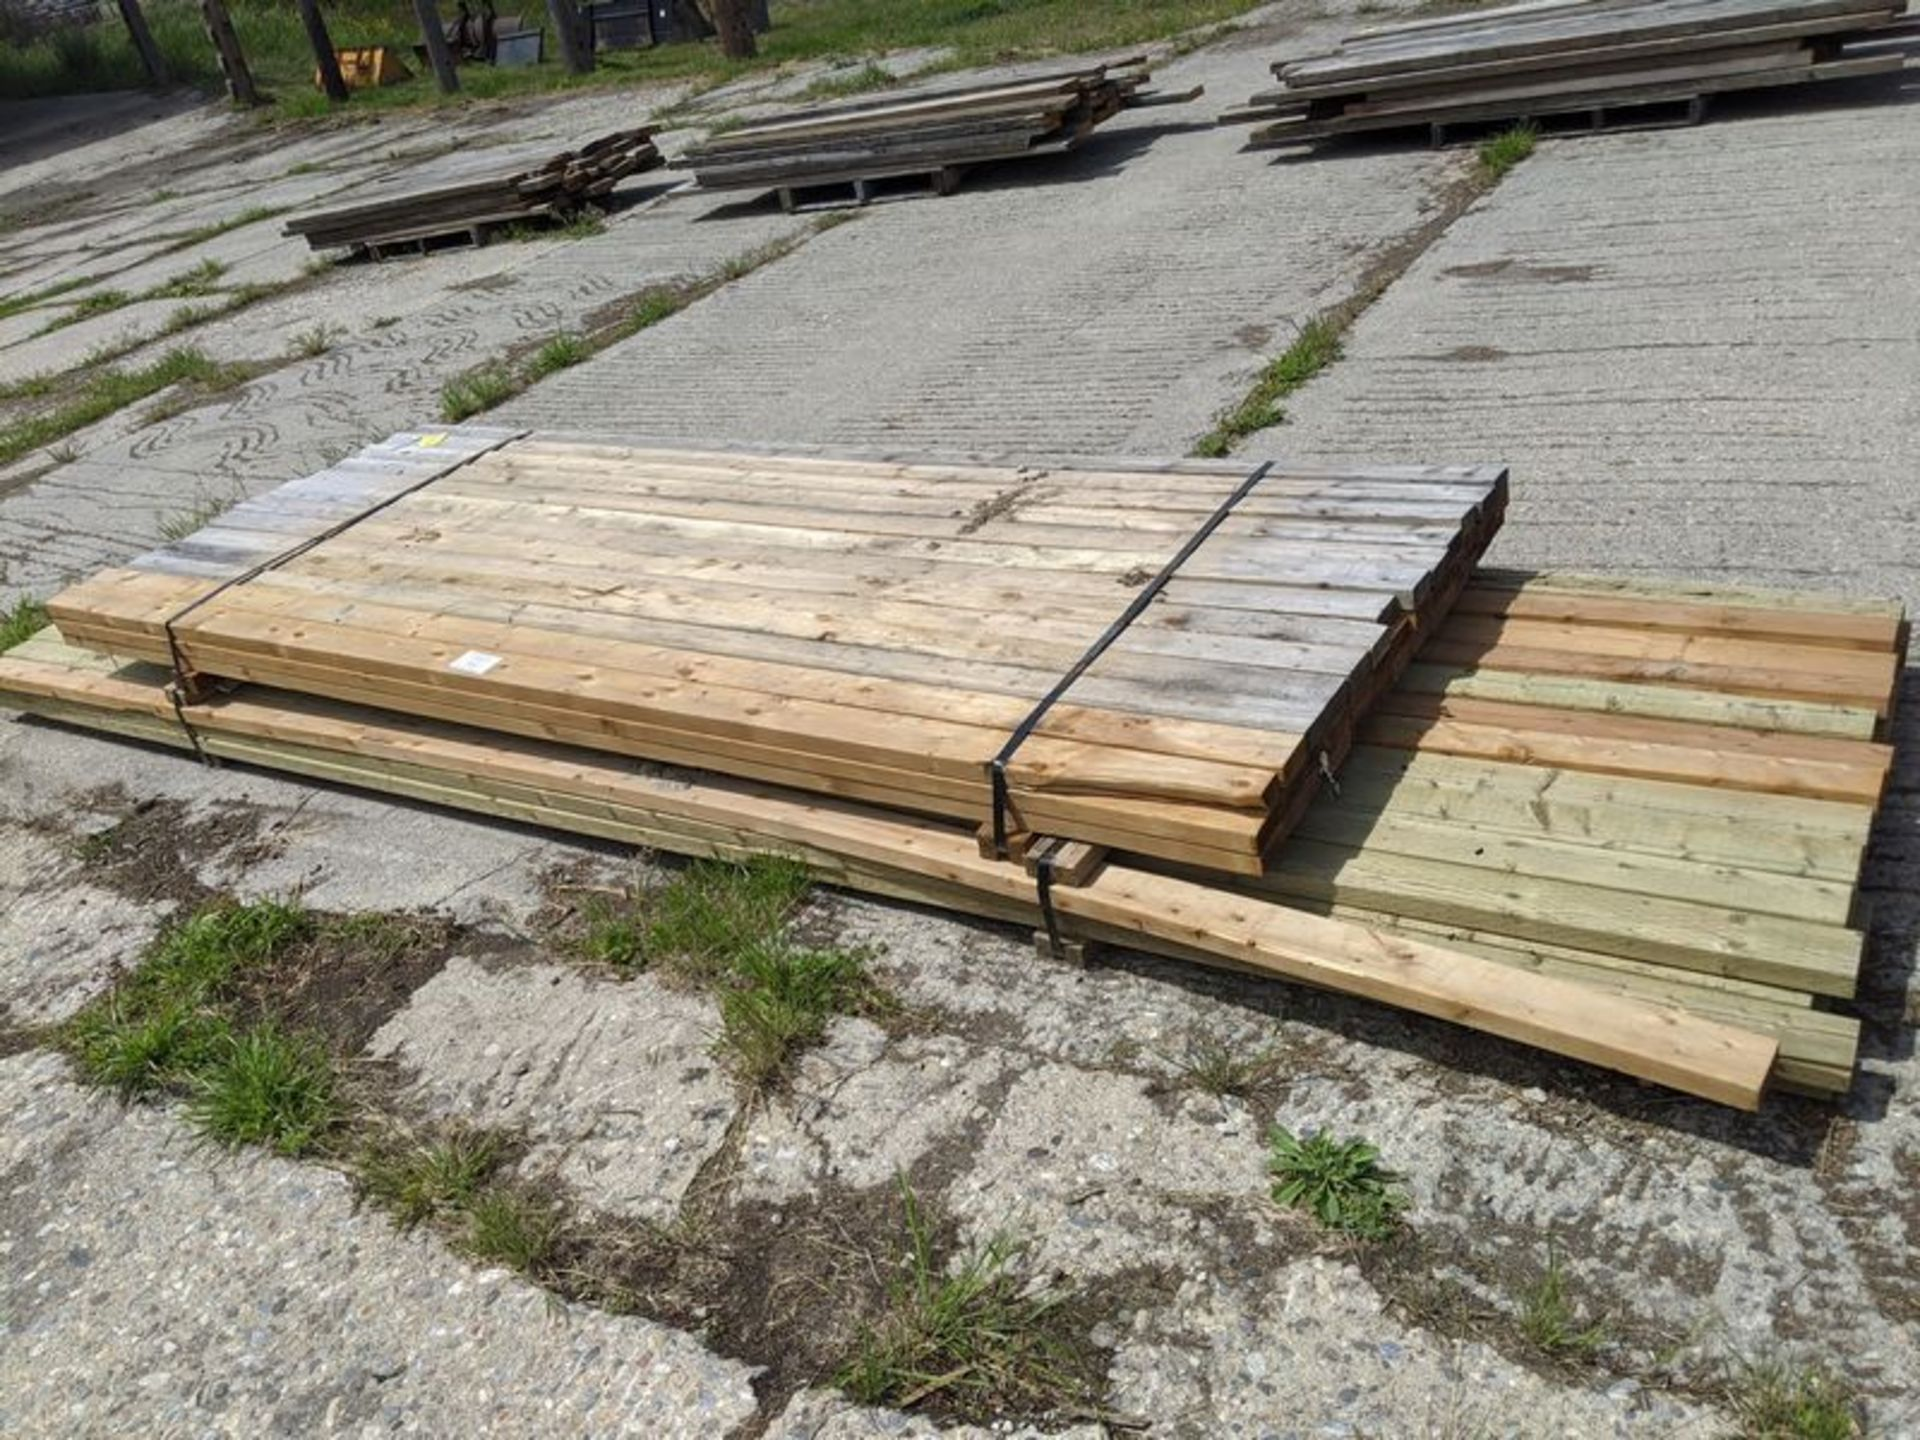 Lot 26 - 2 Slings 2 x 4 Assorted Lengths